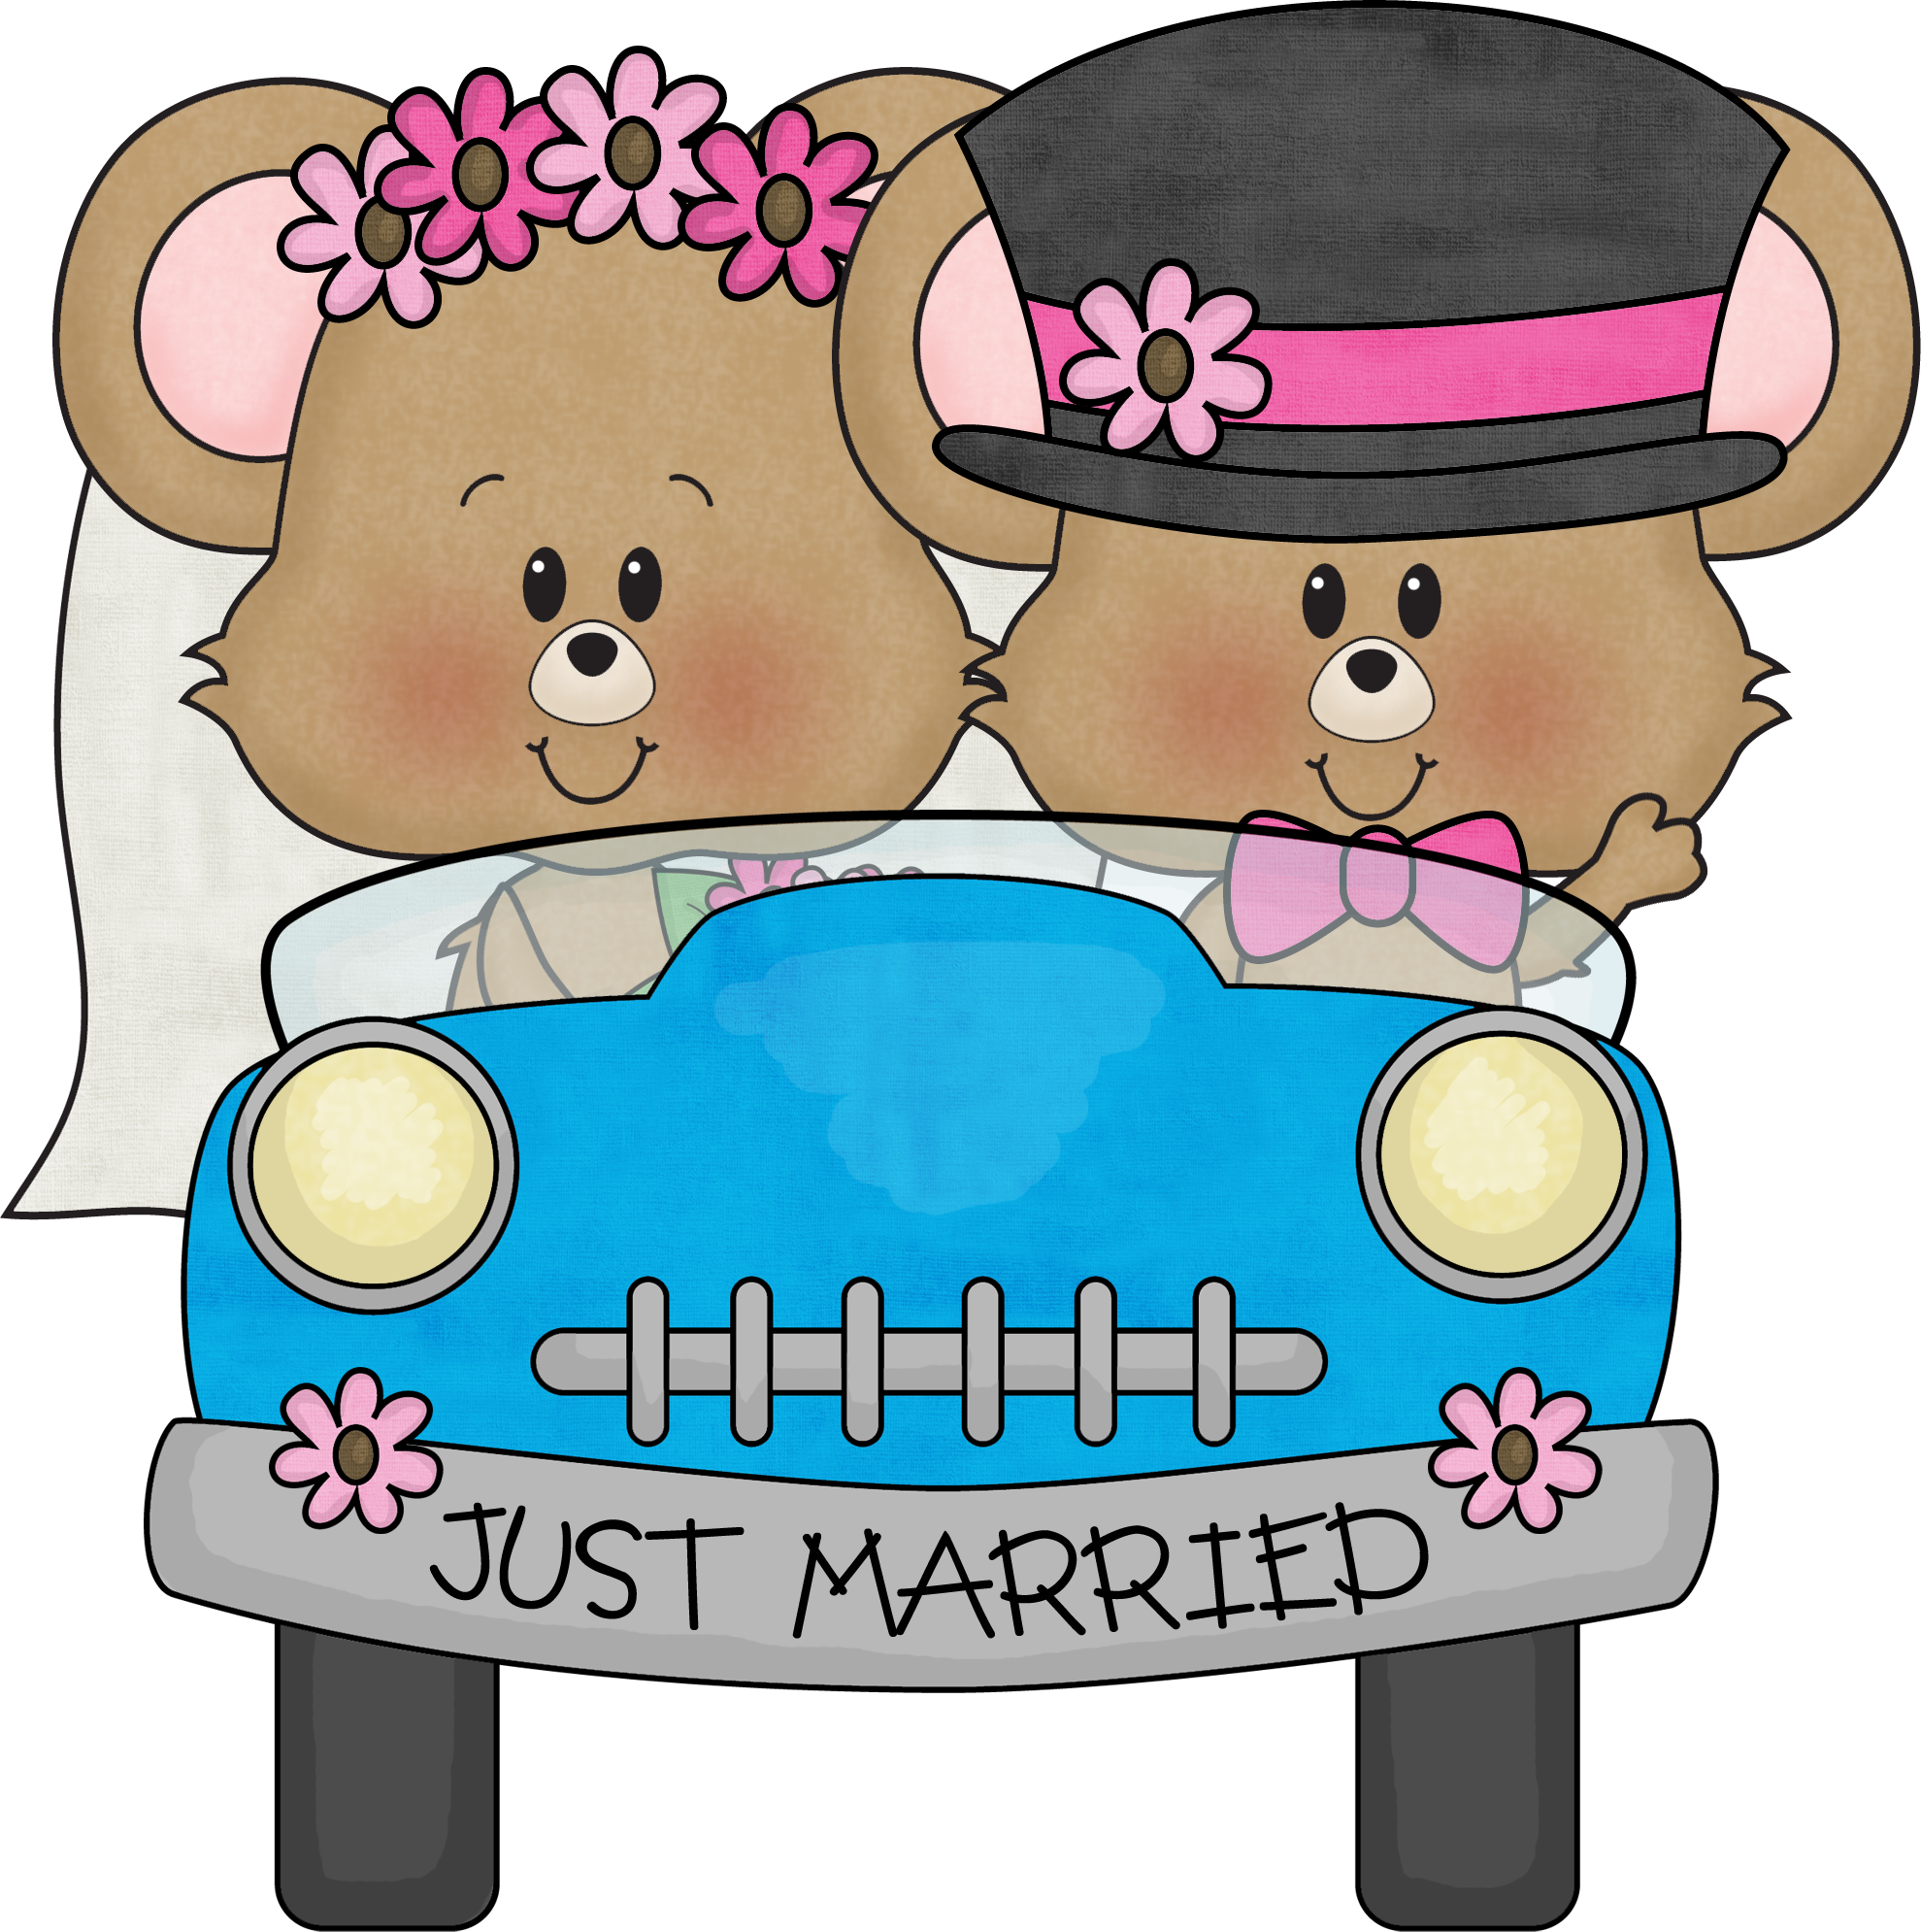 Happy anniversary free clipart clip free stock Dibujos. Clipart. Digi stamp - Wedding - Just Married | Happy ... clip free stock